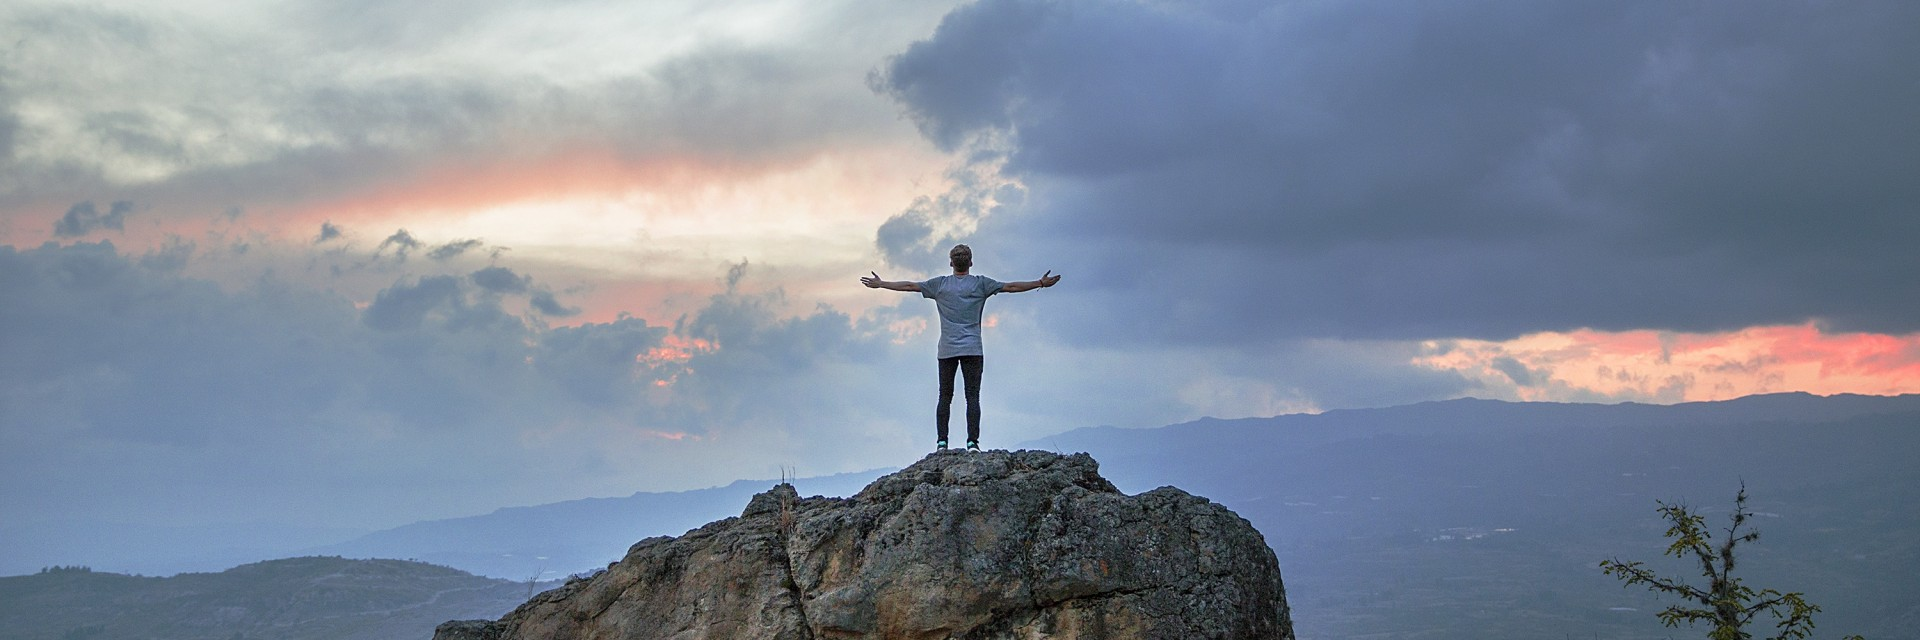 Man in t-shirt standing triumphantly after reaching the top of a big boulder during early sunrise in a national park